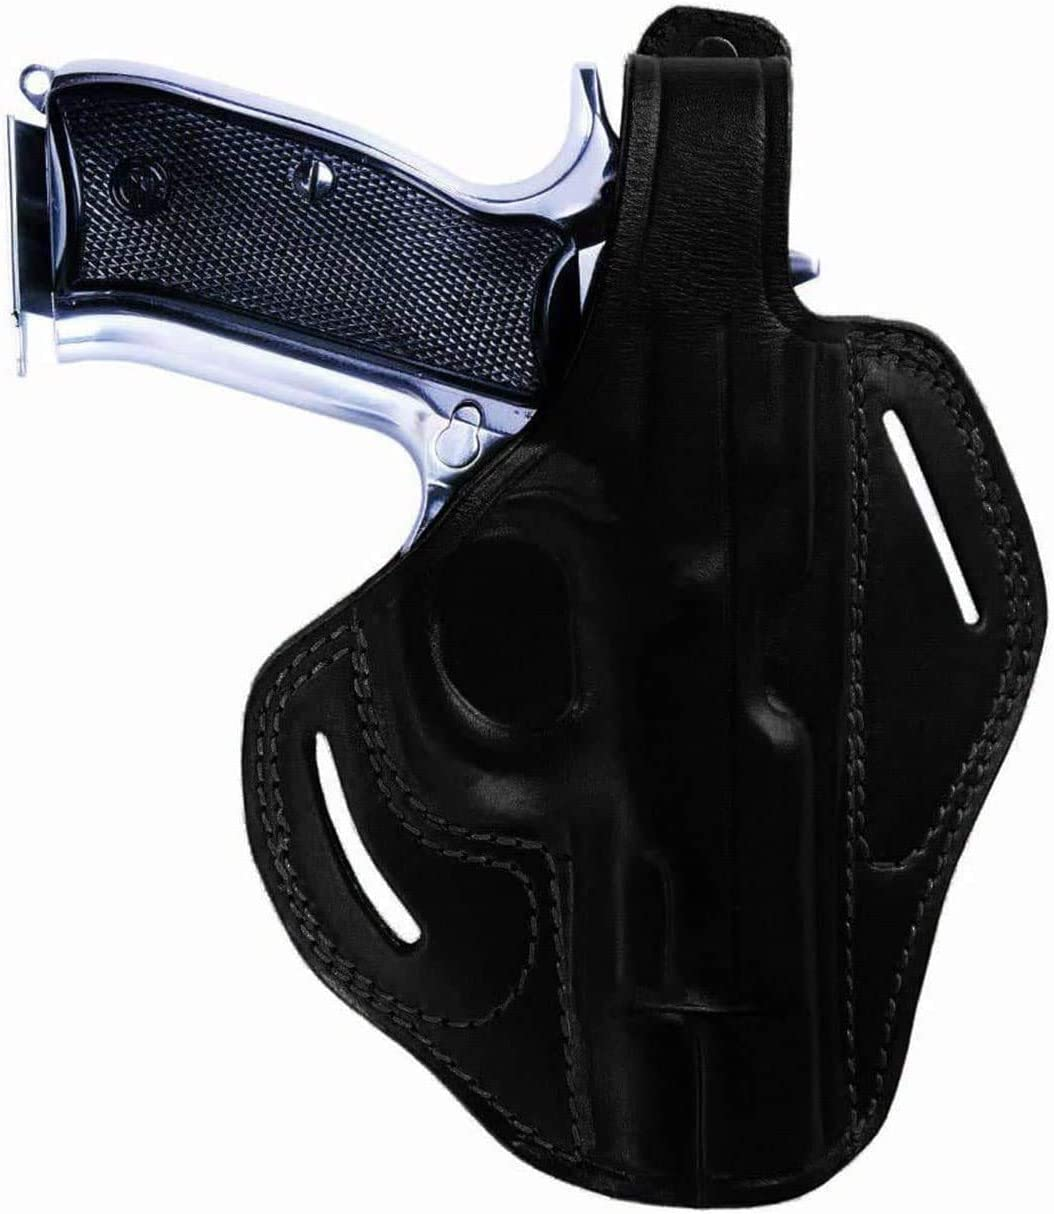 KoHolster Concealed Carry Leather 1 year warranty Holster Gun OWB Belt All items free shipping